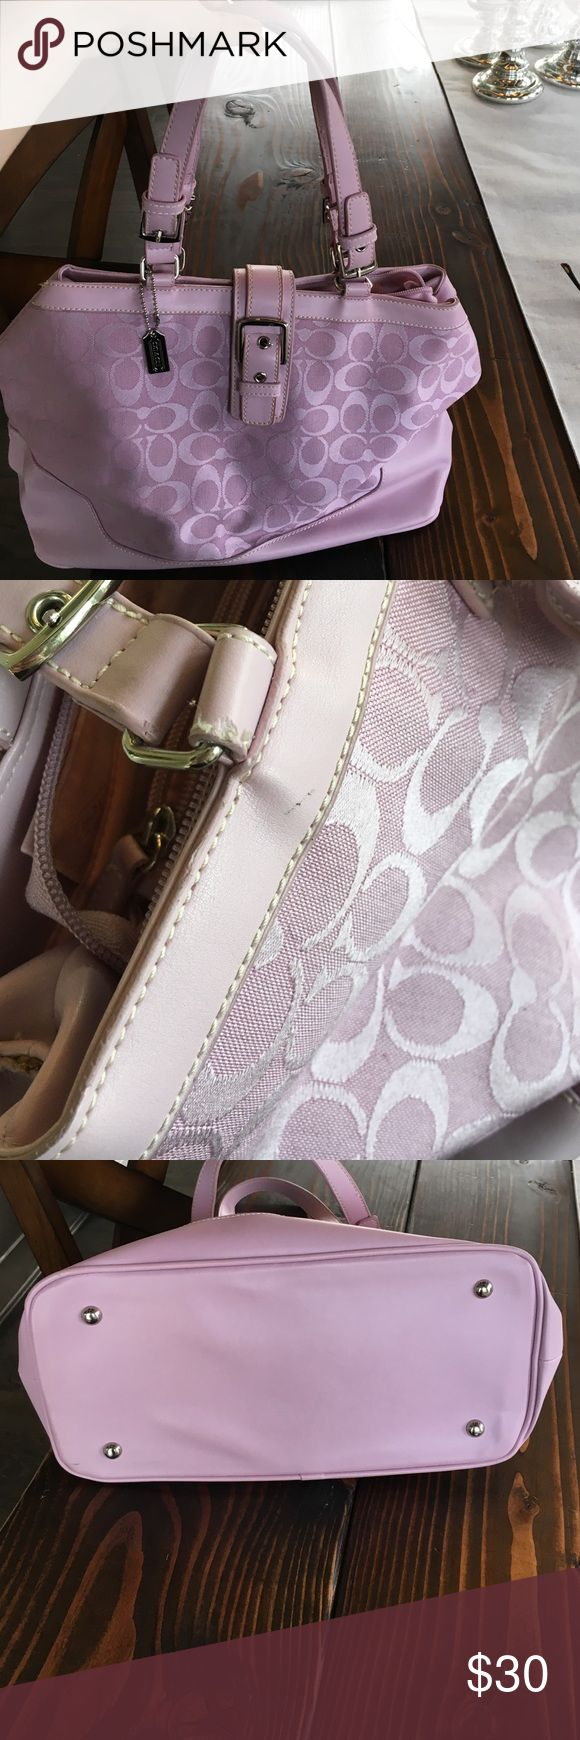 Pink Coach purse Super cute pink Coach purse in great condition. It was maybe worn once. One tiny imperfection which I highlighted but overall very clean. Coach Bags Shoulder Bags